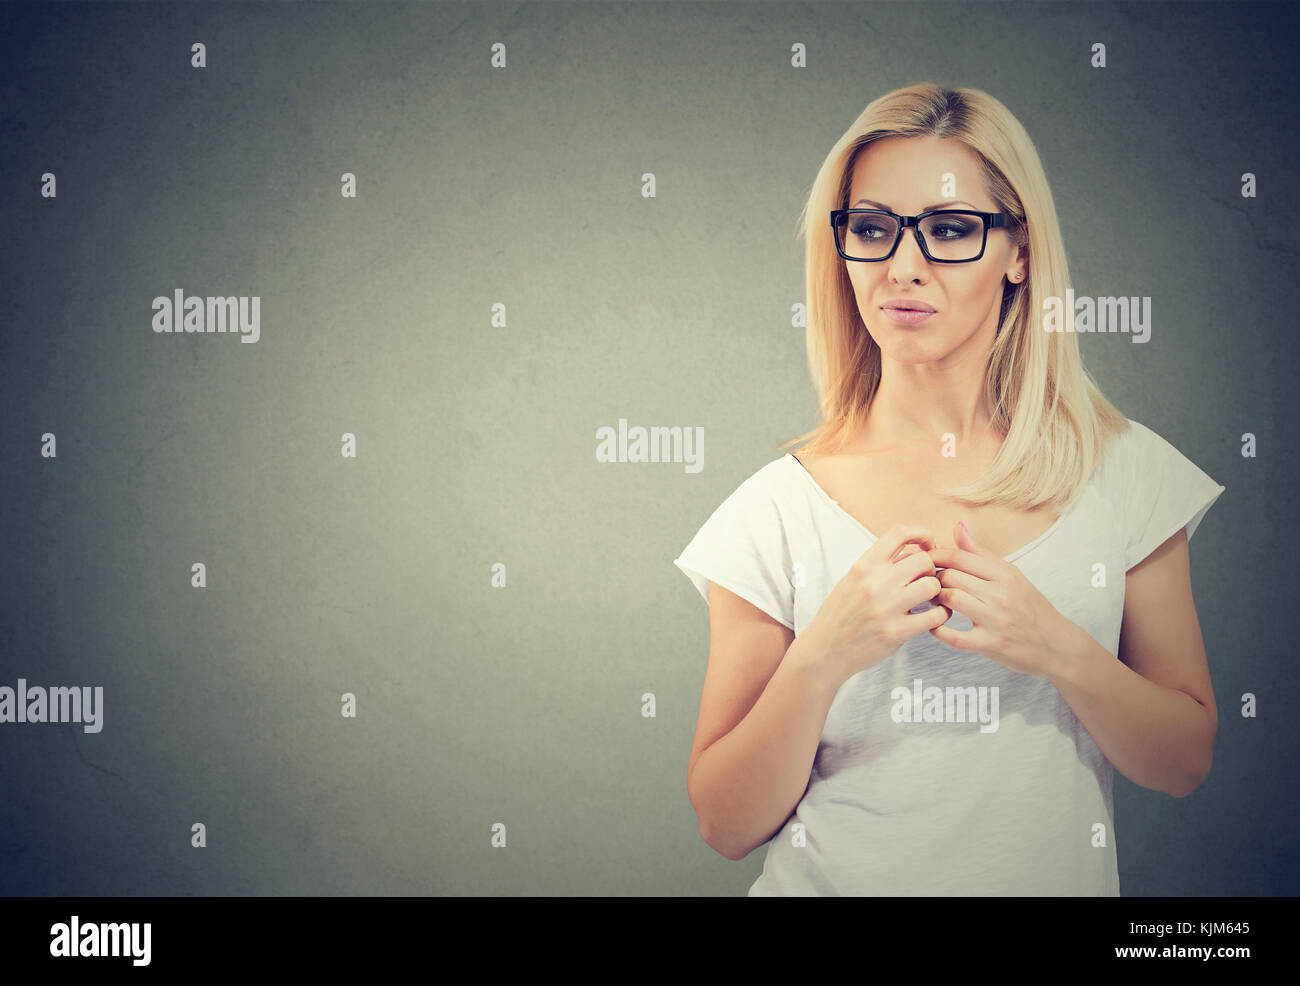 Displeased suspicious woman looking sideways isolated on gray background. Negative emotion perception - Stock Image